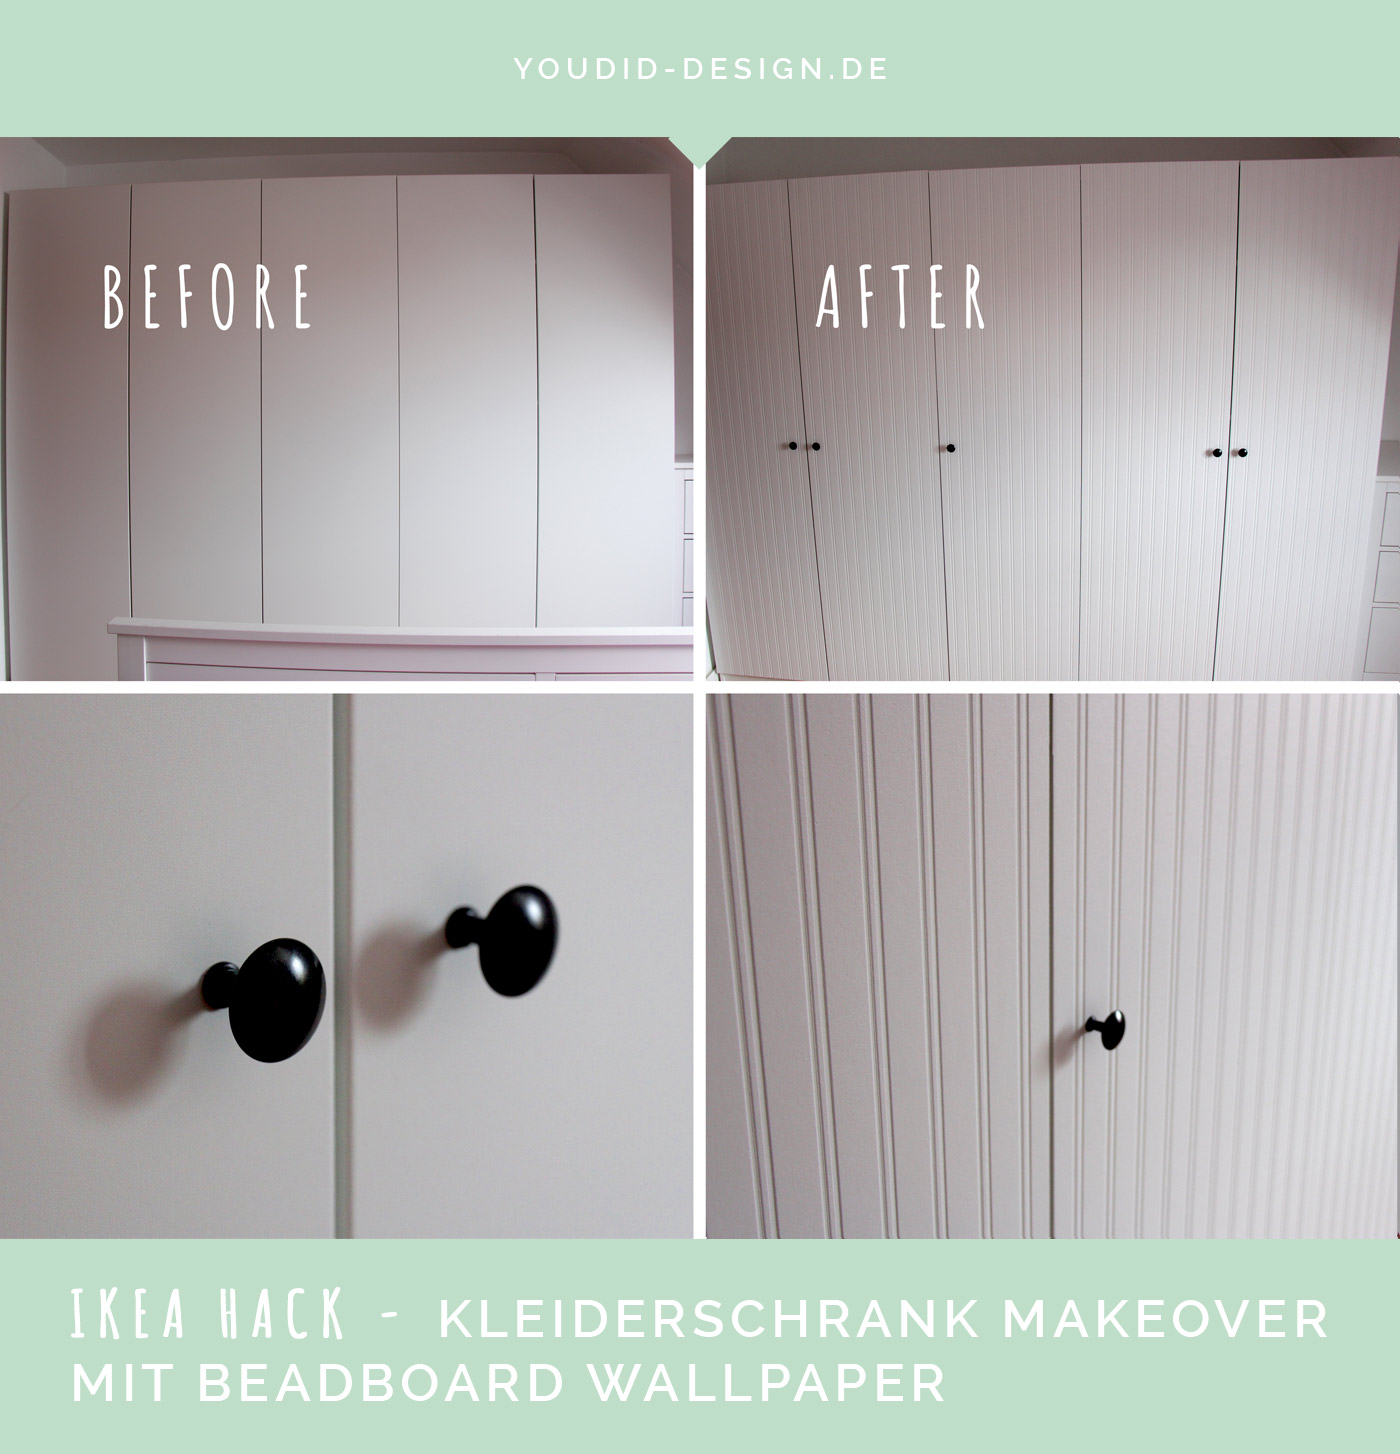 Before After IKEA Hack U2013 PAX Wardrobe Makeover With Beadboard Wallpaper |  Www.youdid